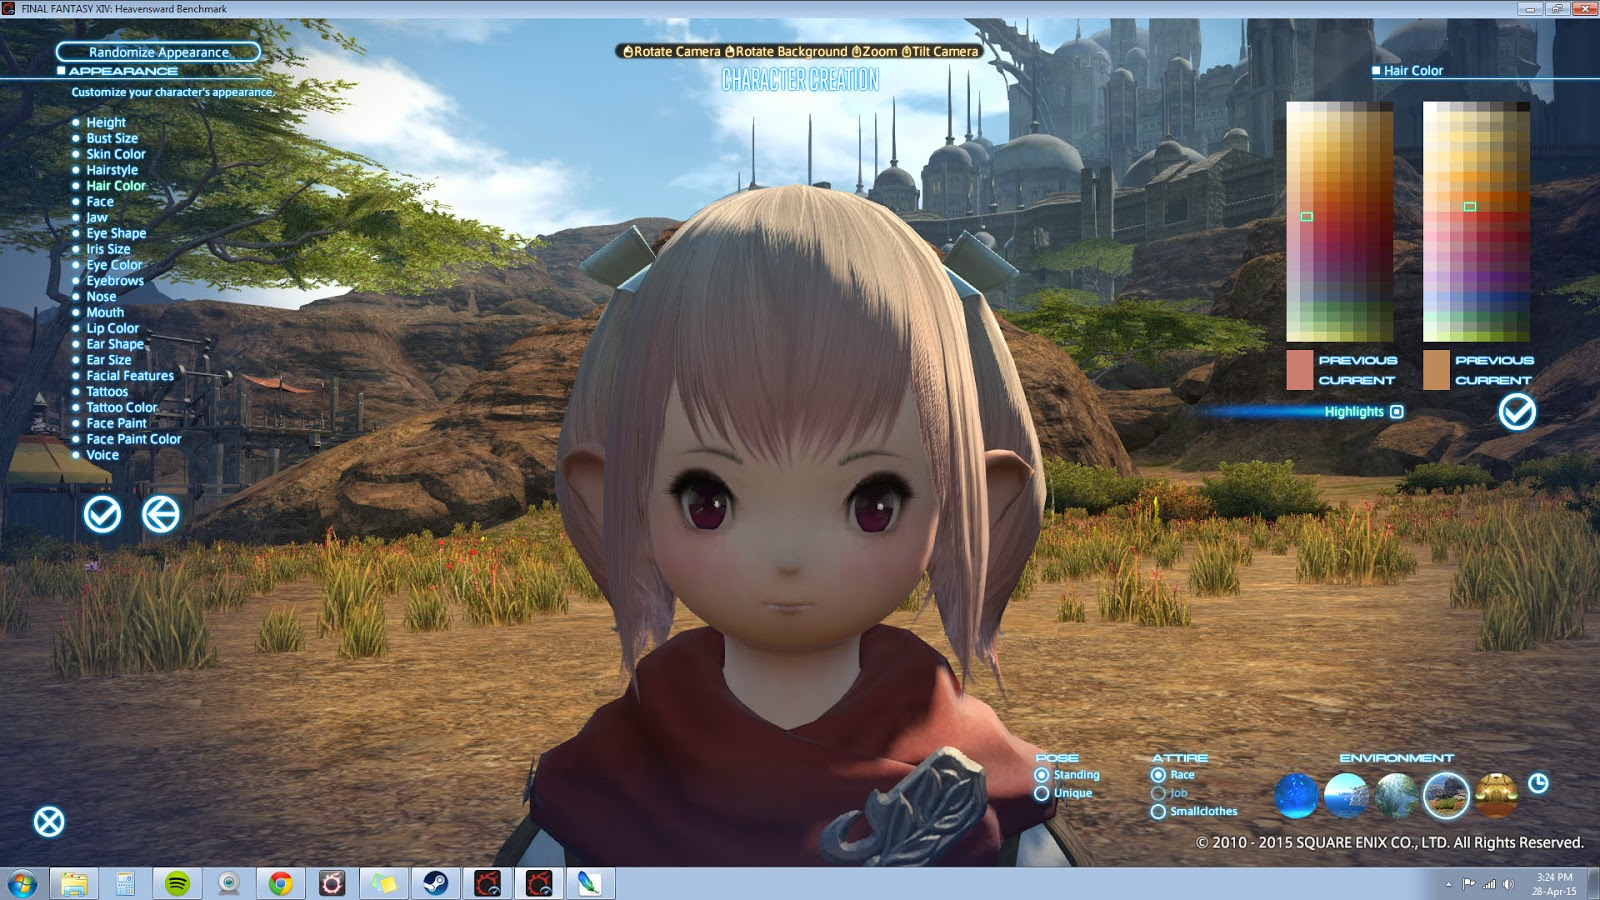 Tank and a healer final fantasy a realm reborn character creation